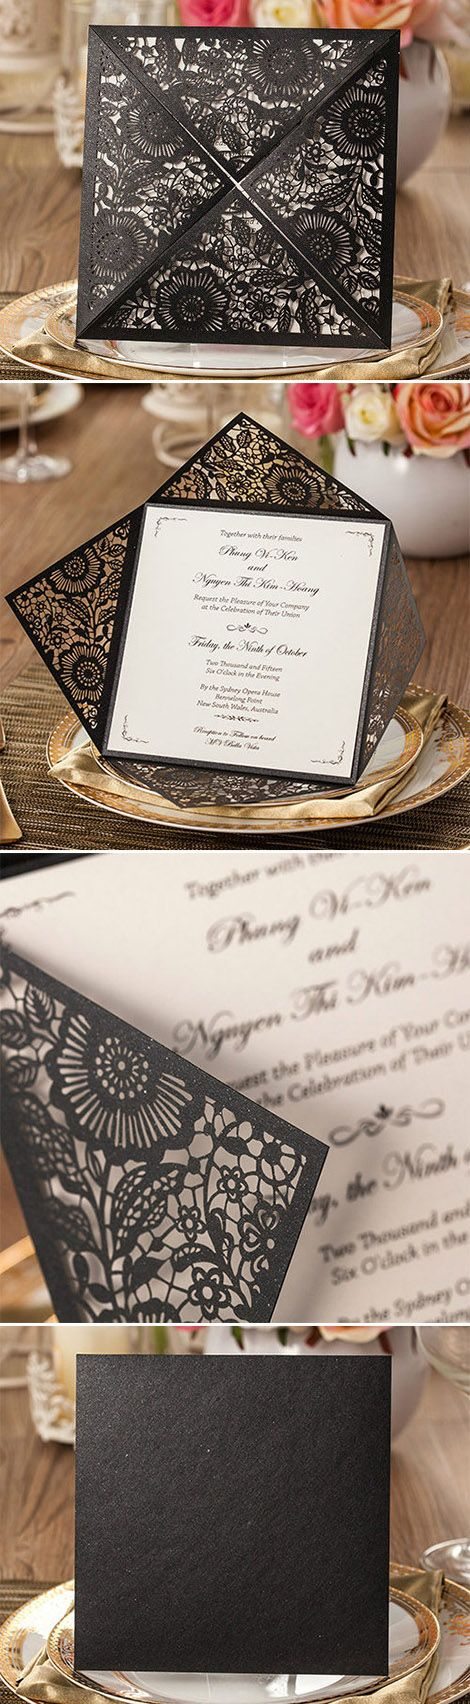 chic vintage black and white laser cut wedding invitations